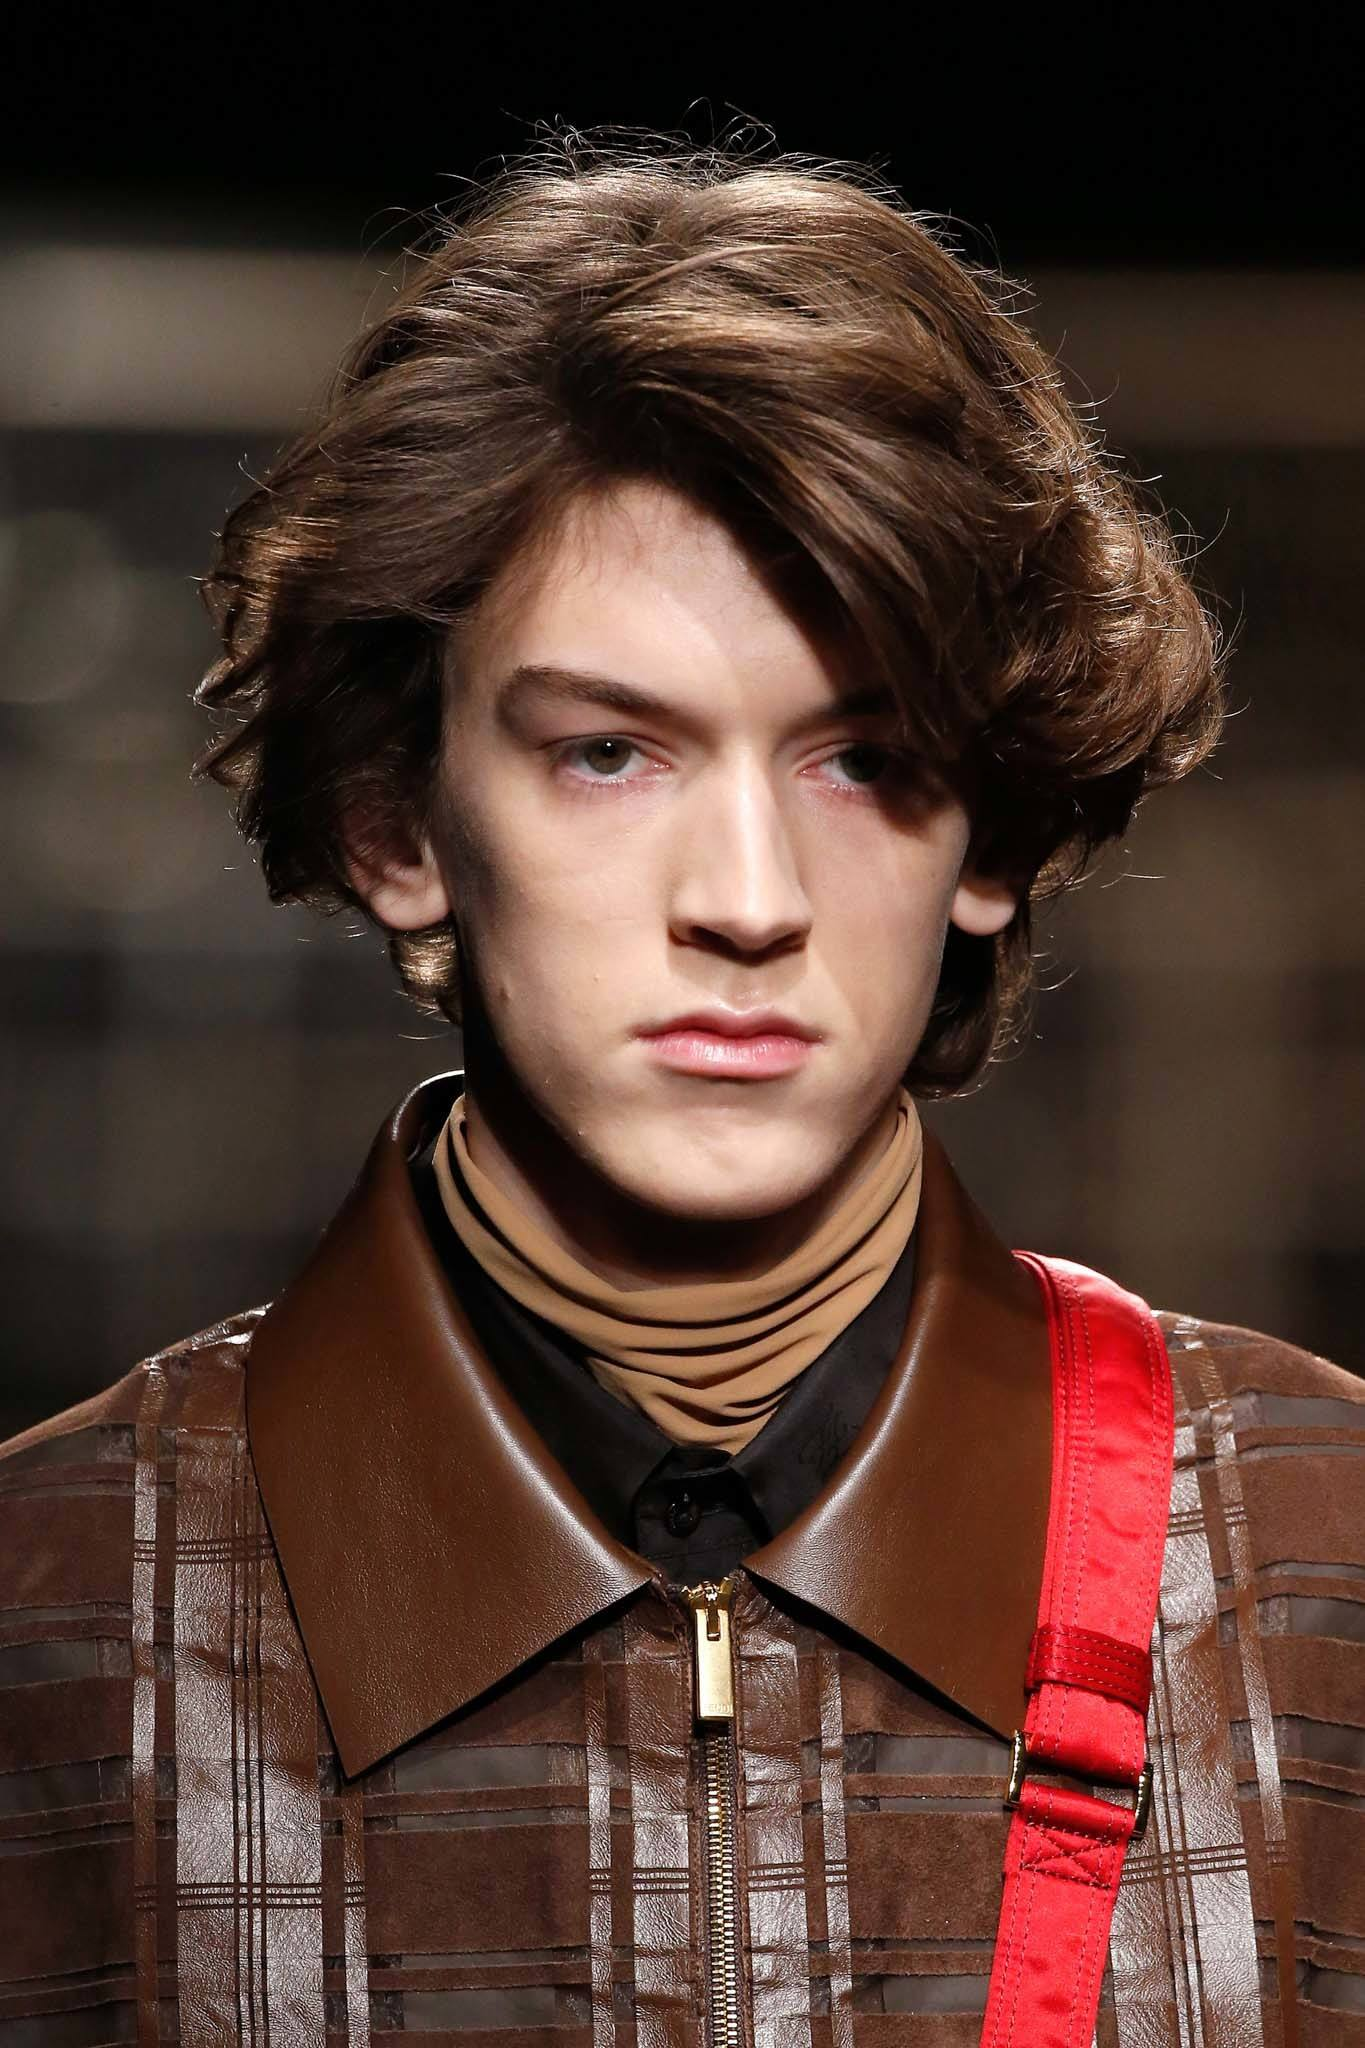 Milan Fashion Week Men's AW19: Brown haired male model with floppy mid-length hair